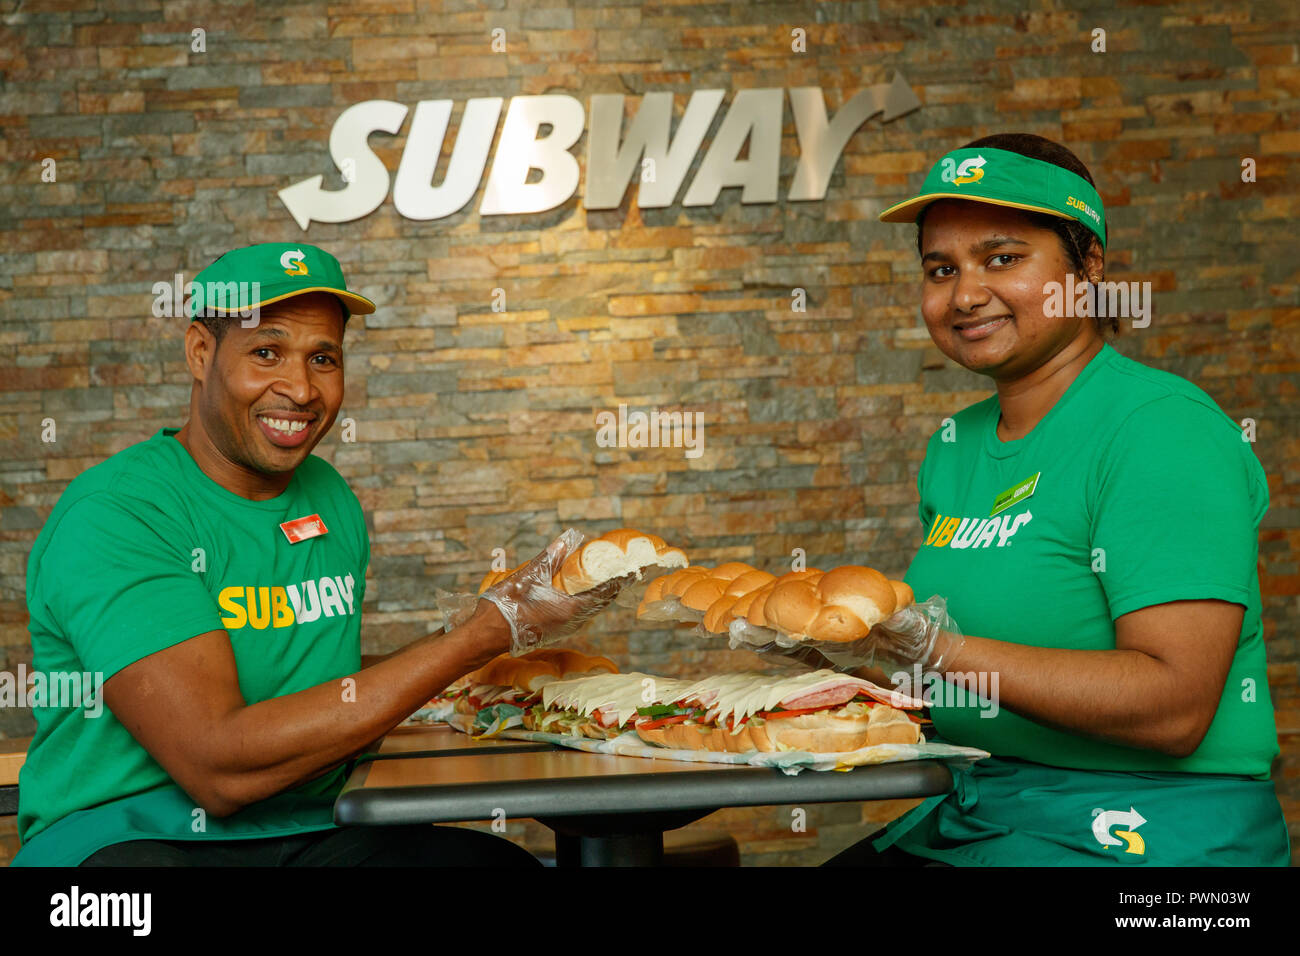 407d66ad8a6b1 Subway Sandwich Artists Justin Pringle and Yasoda Jayaweera make a BMT  Giant Sub for the wedding reception of James and Lucinda Coad at Abbotts  Hill School ...